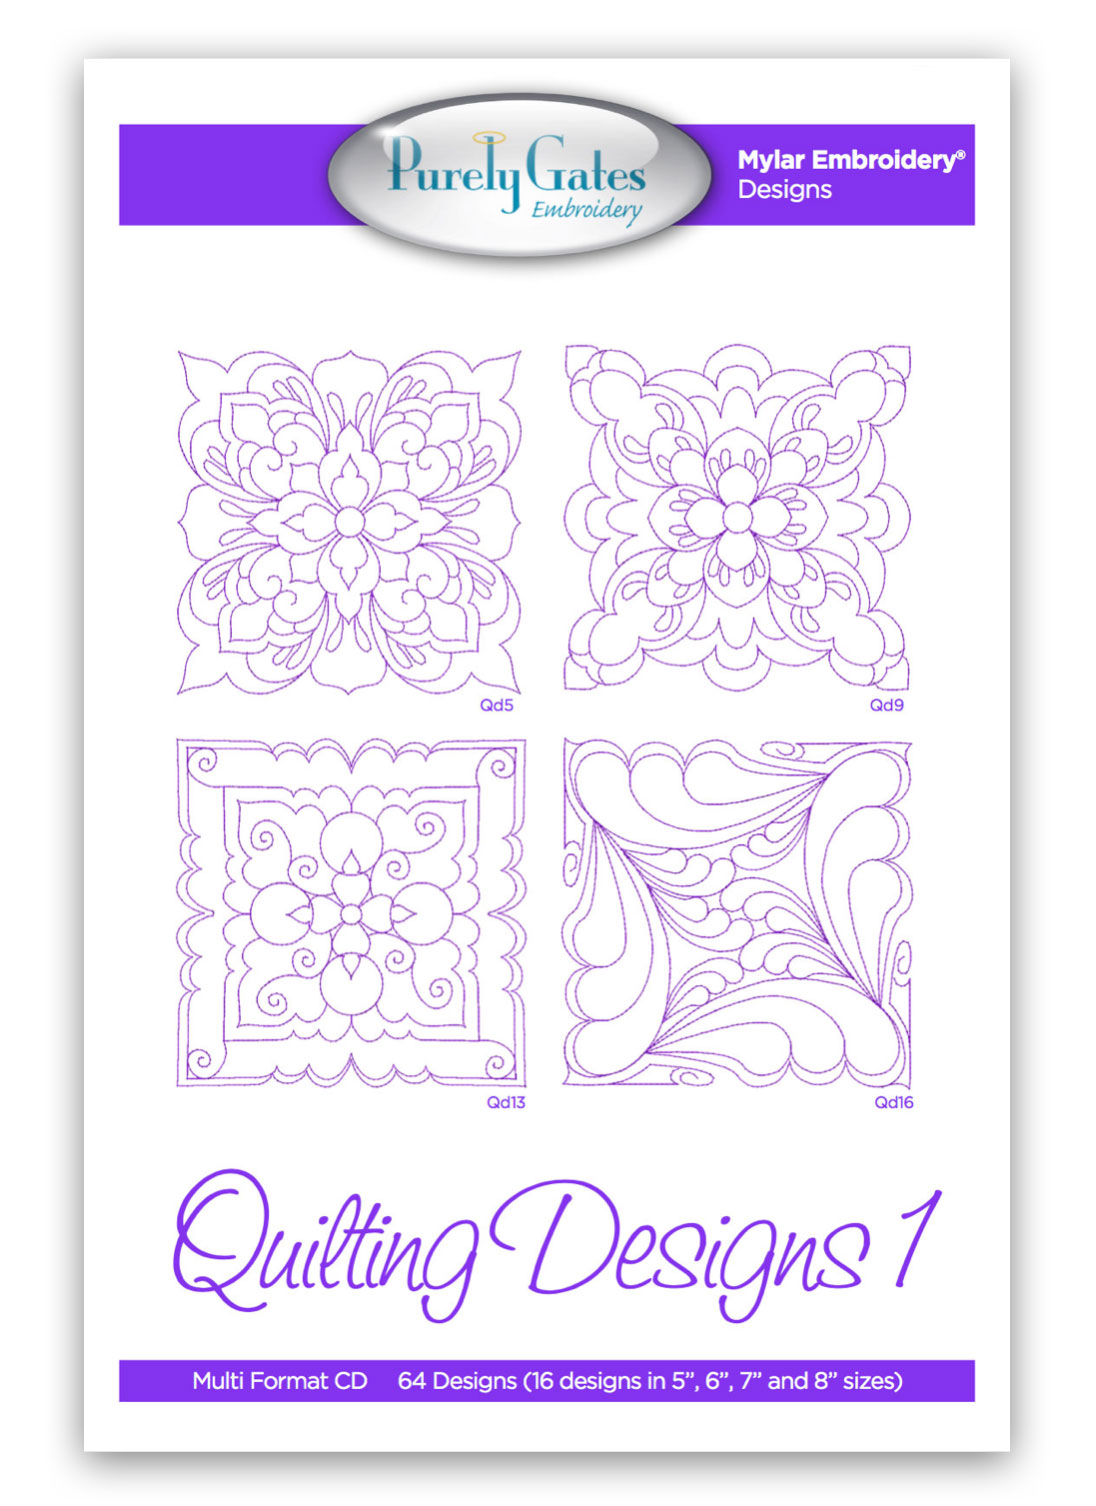 Quilting-Designs-1-Cover-Art.jpg